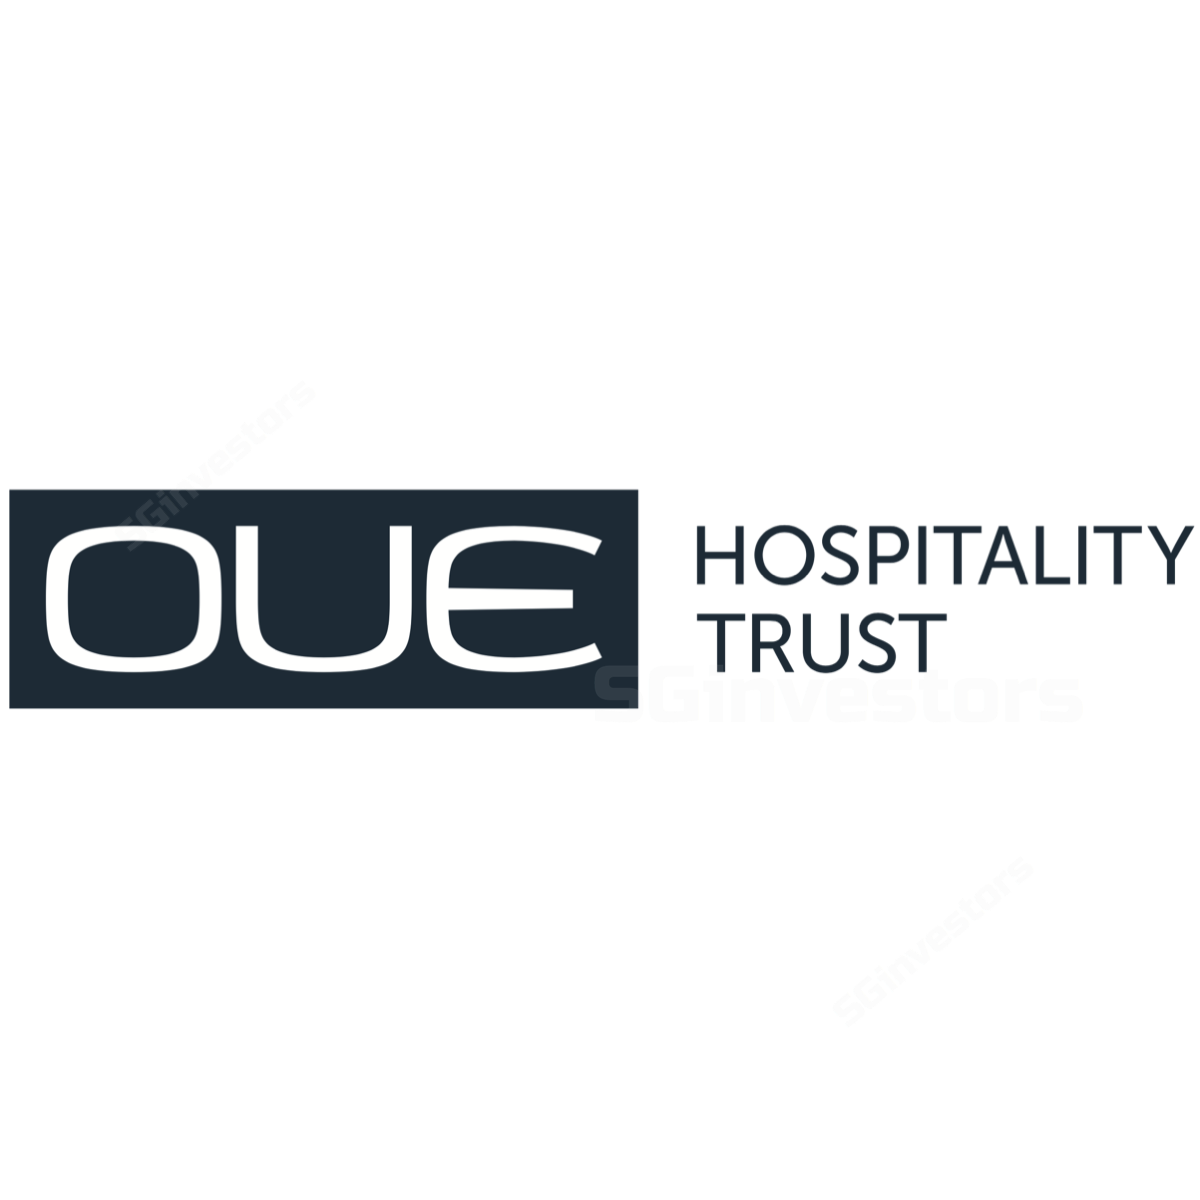 OUE Hospitality Trust - OCBC Investment 2018-05-03: With Class And Style